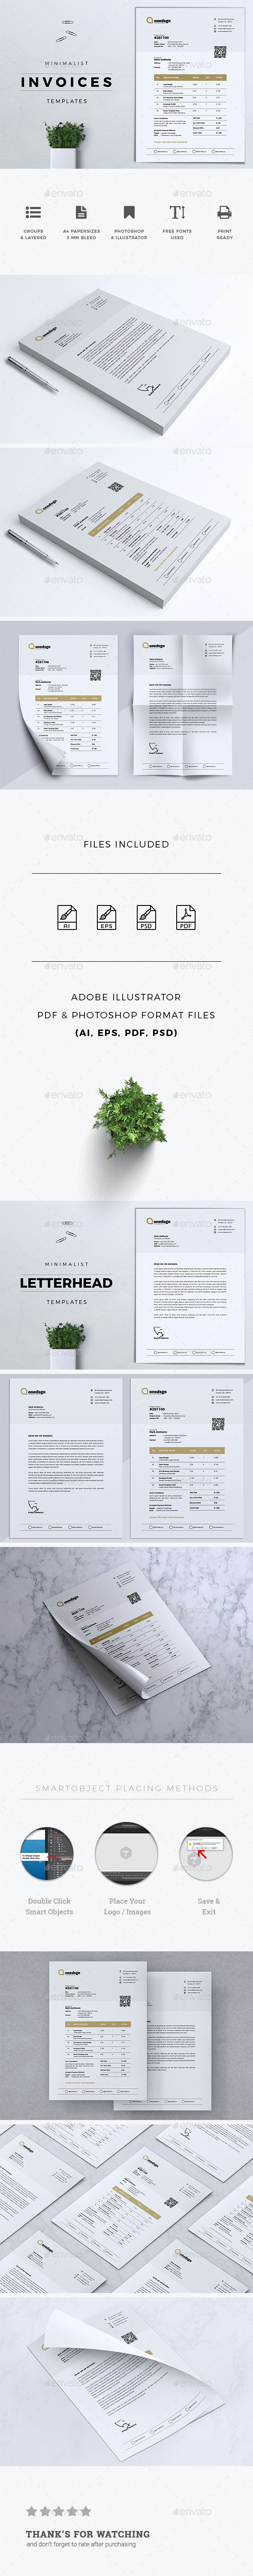 Minimal Invoices with Letterhead - Proposals & Invoices Stationery